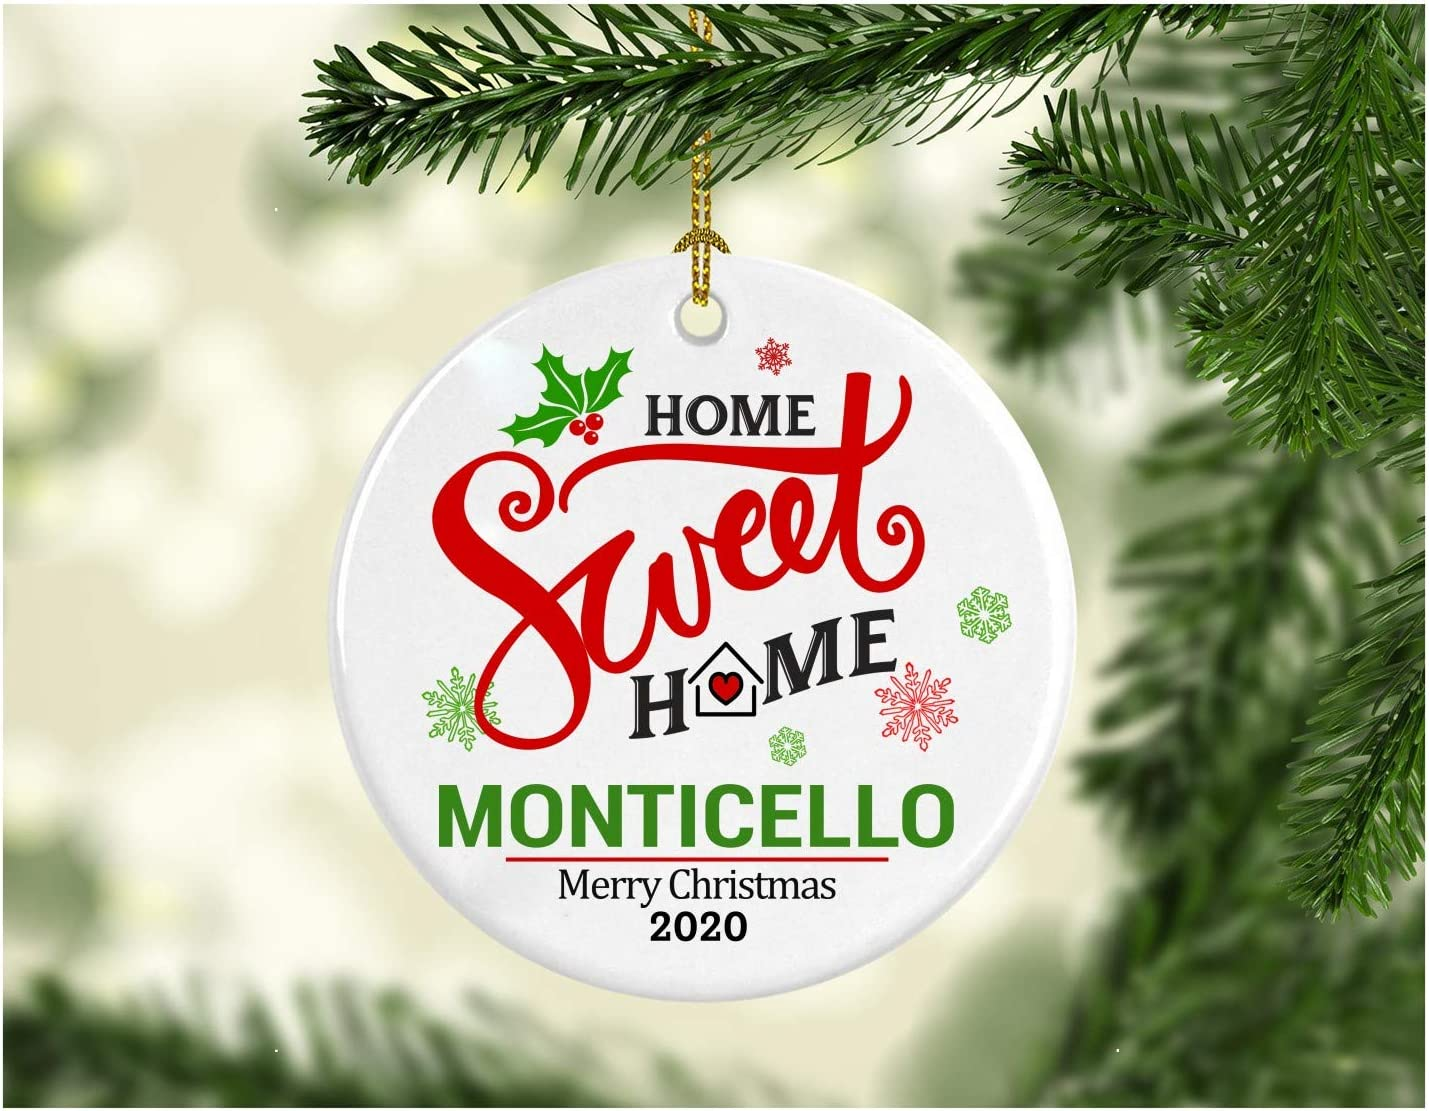 Christmas Decoration Tree Ornament State - Home Sweet Home Monticello Merry Christmas 2020 - Xmas Gift for Family Best Friend Mom Dad - MDF Plastic Ornament 3 Inches White